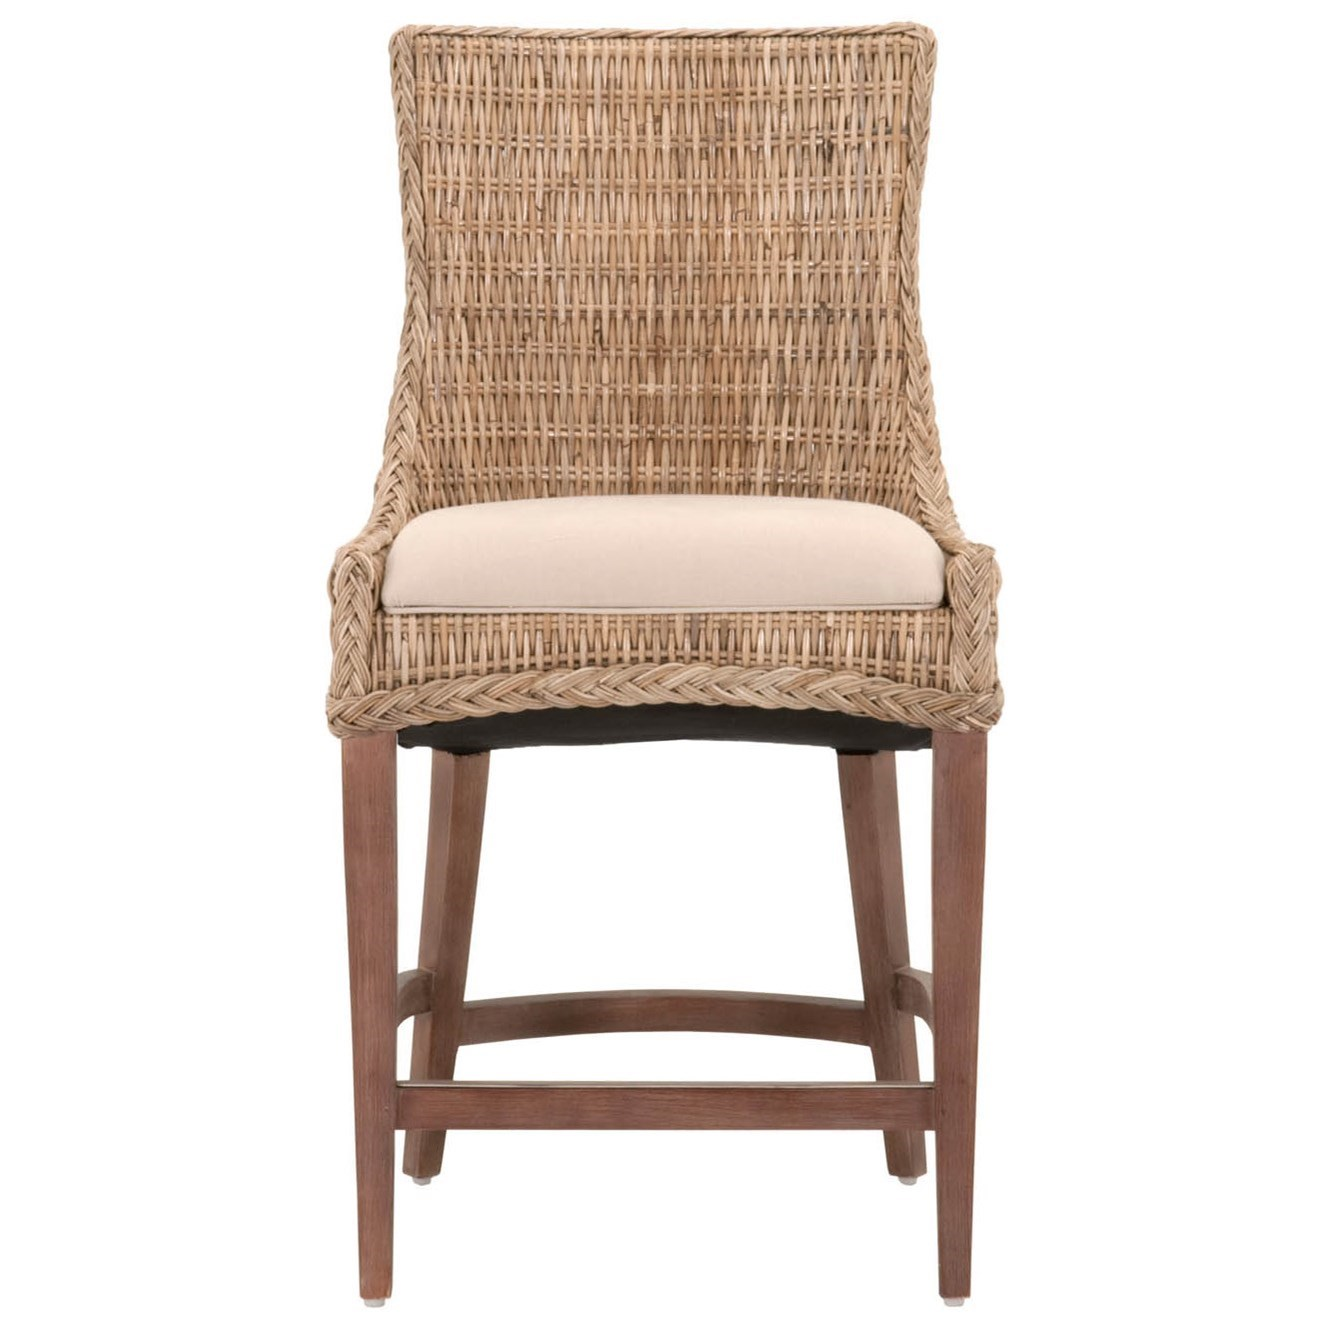 Woven Greco Counter Stool by Essentials for Living at Baer's Furniture